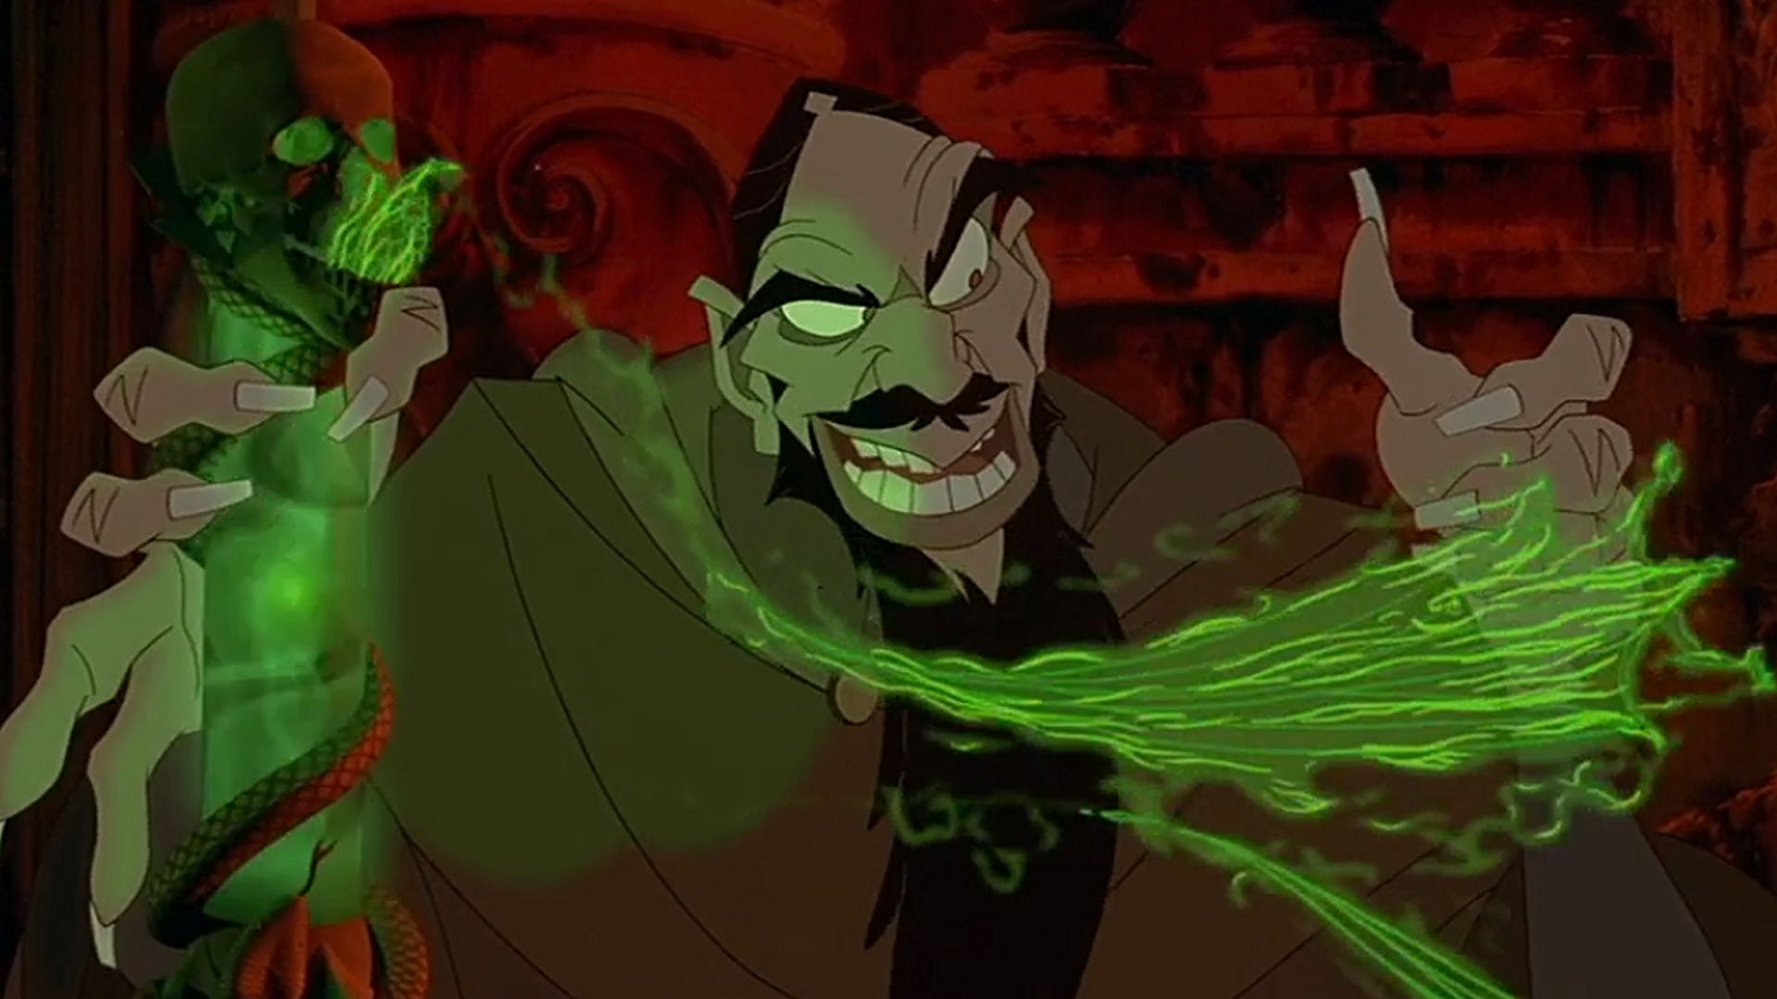 The evil Rasputin (voiced by Christopher Lloyd) - the historical monk rewritten as a black sorcerer in Anastasia (1997)